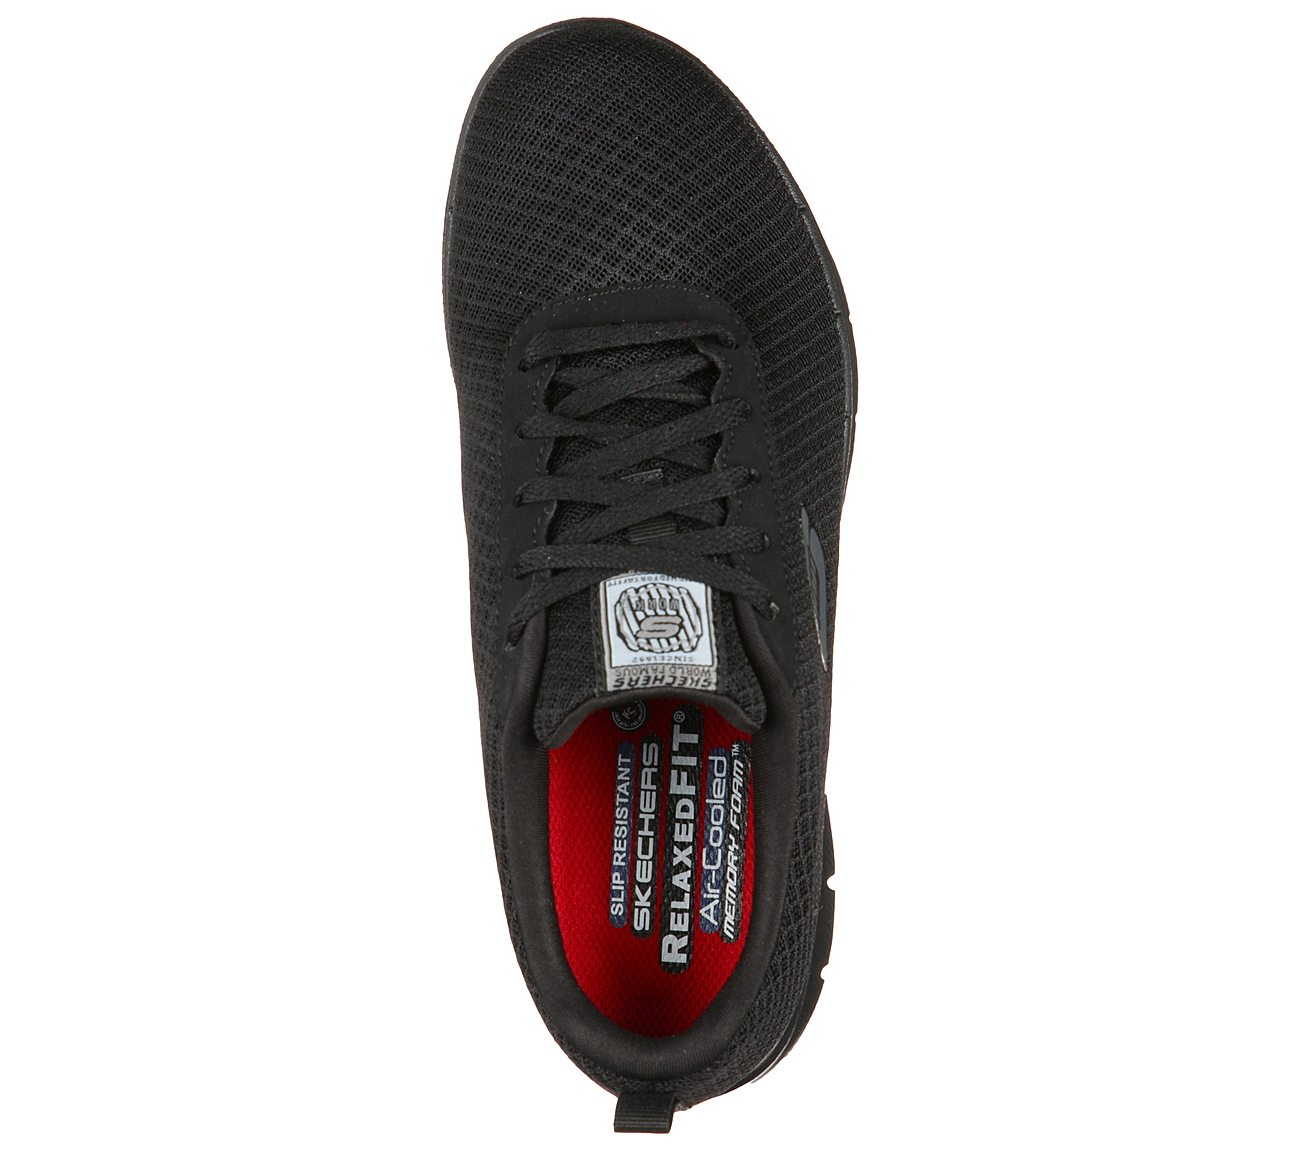 33142ea542f2 Buy SKECHERS Work Relaxed Fit  Ghenter - Bronaugh SR Work Shoes only ...